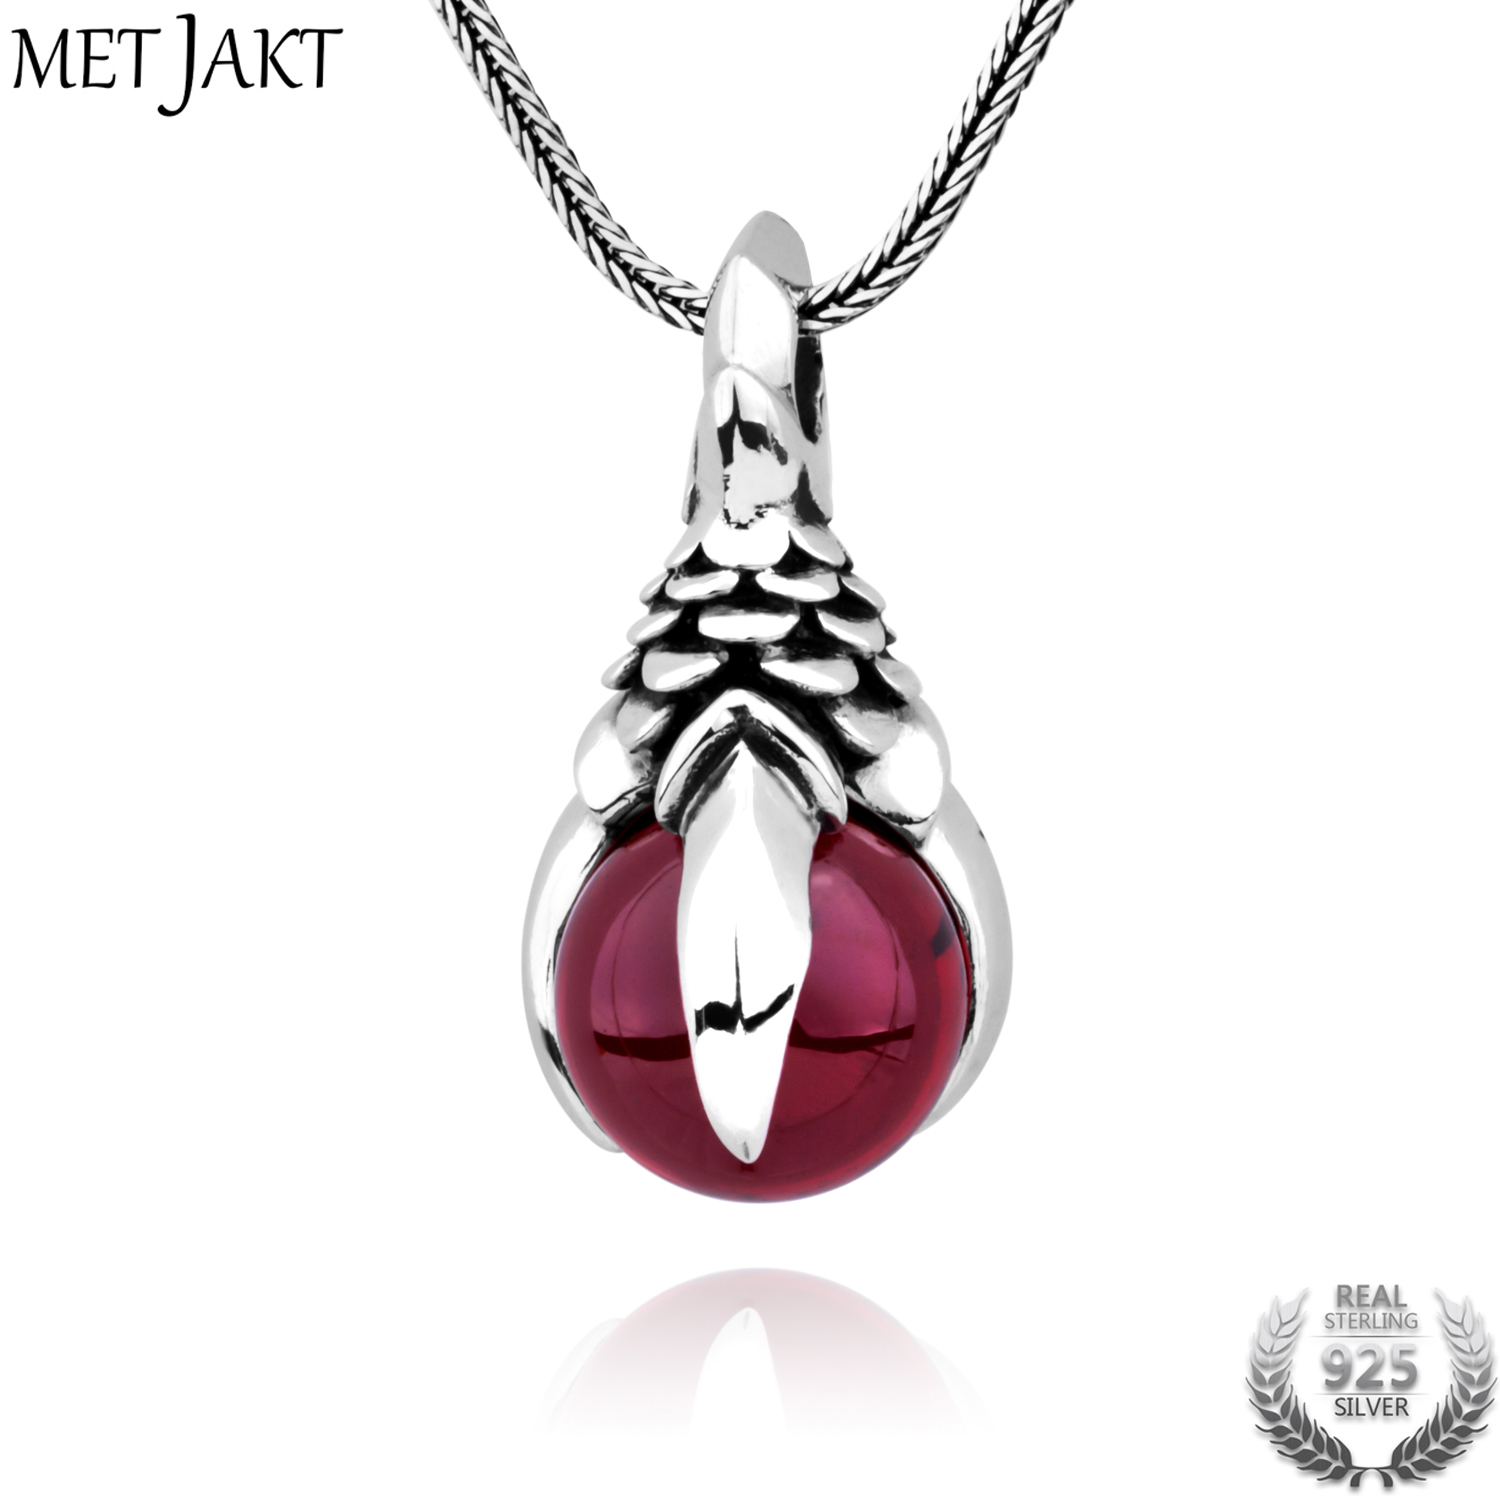 MetJakt Mens Punk Dragon Claw Garnet Pendant Necklace Solid 925 Sterling Silver and Snake Chain Handmade Jewelry